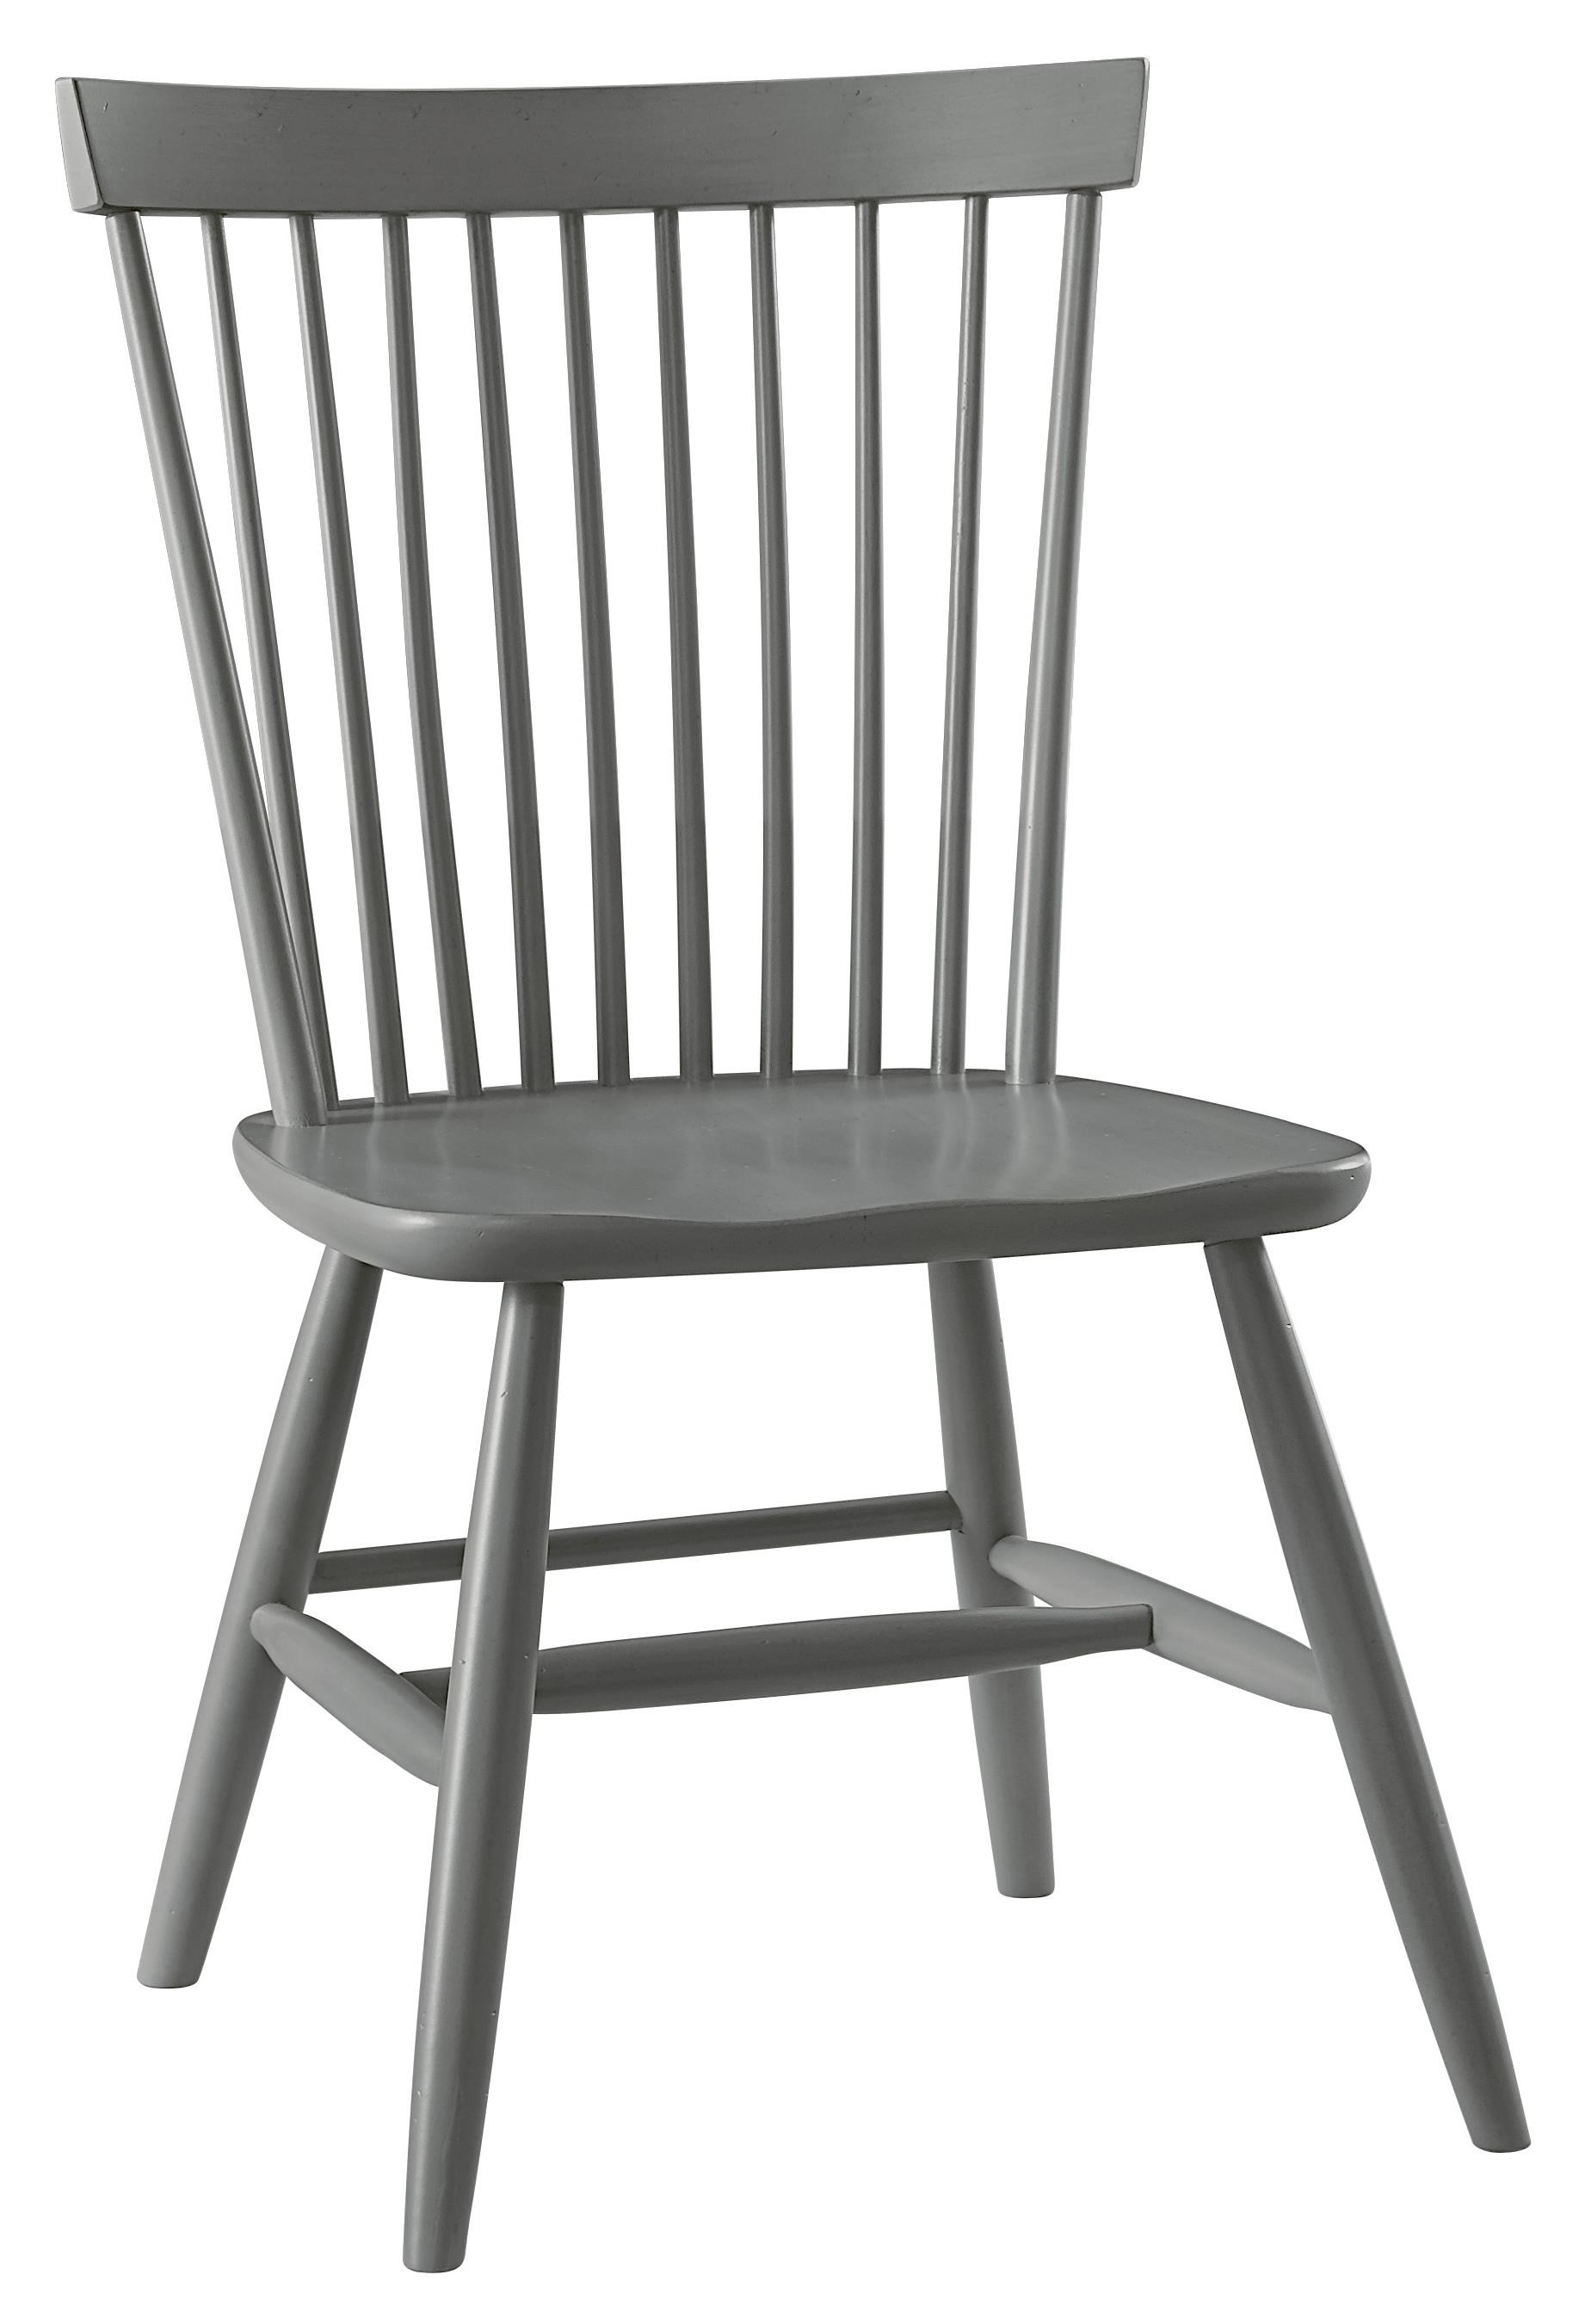 Vaughan Bassett French Market Desk Chair With Spindle Back   Great American  Home Store   Office Side Chairs